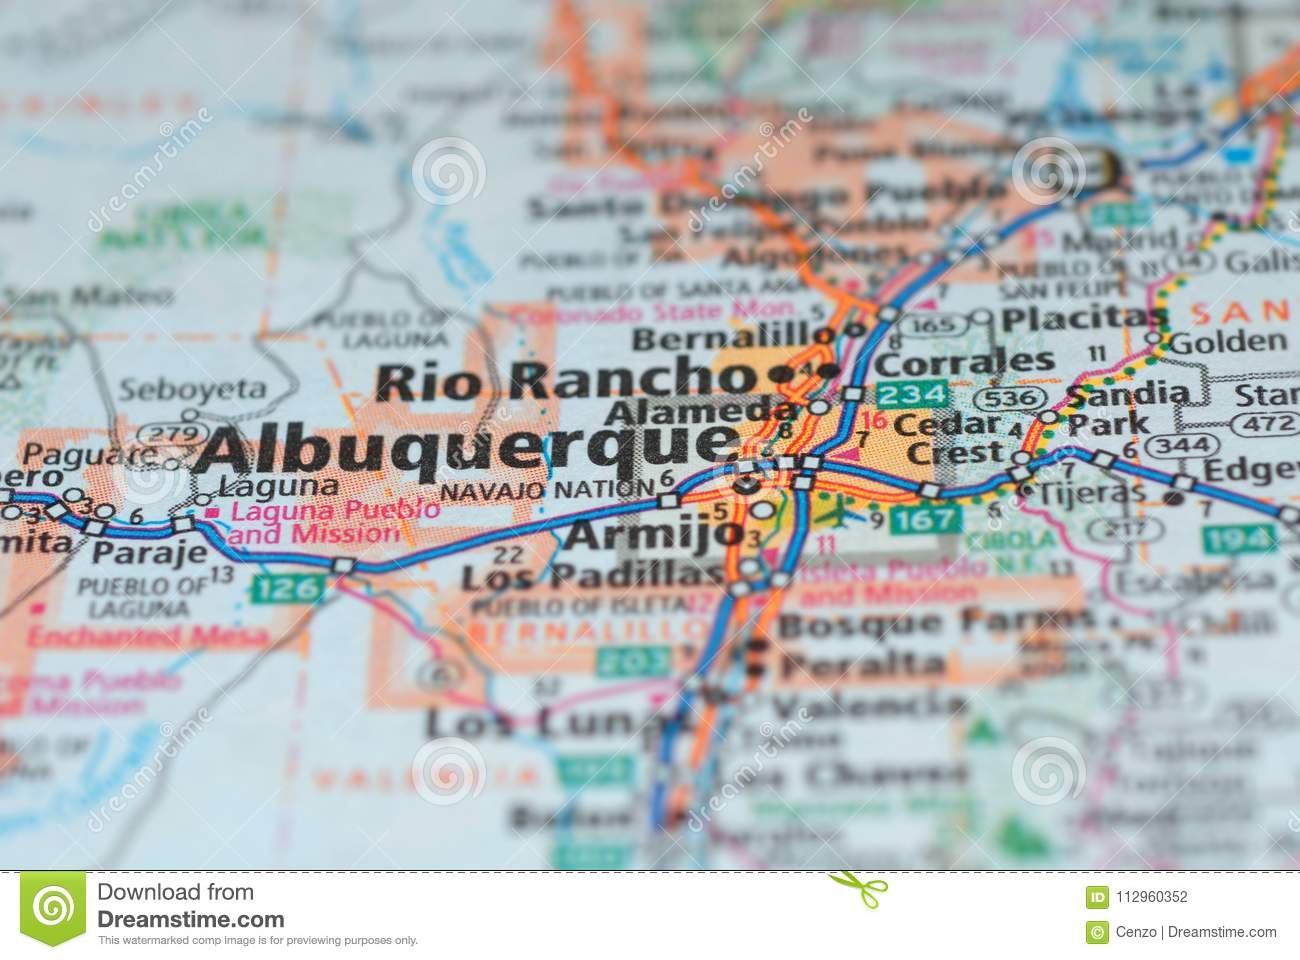 Roads On The Map Around Albuquerque City, USA. Stock Photo - Image ...